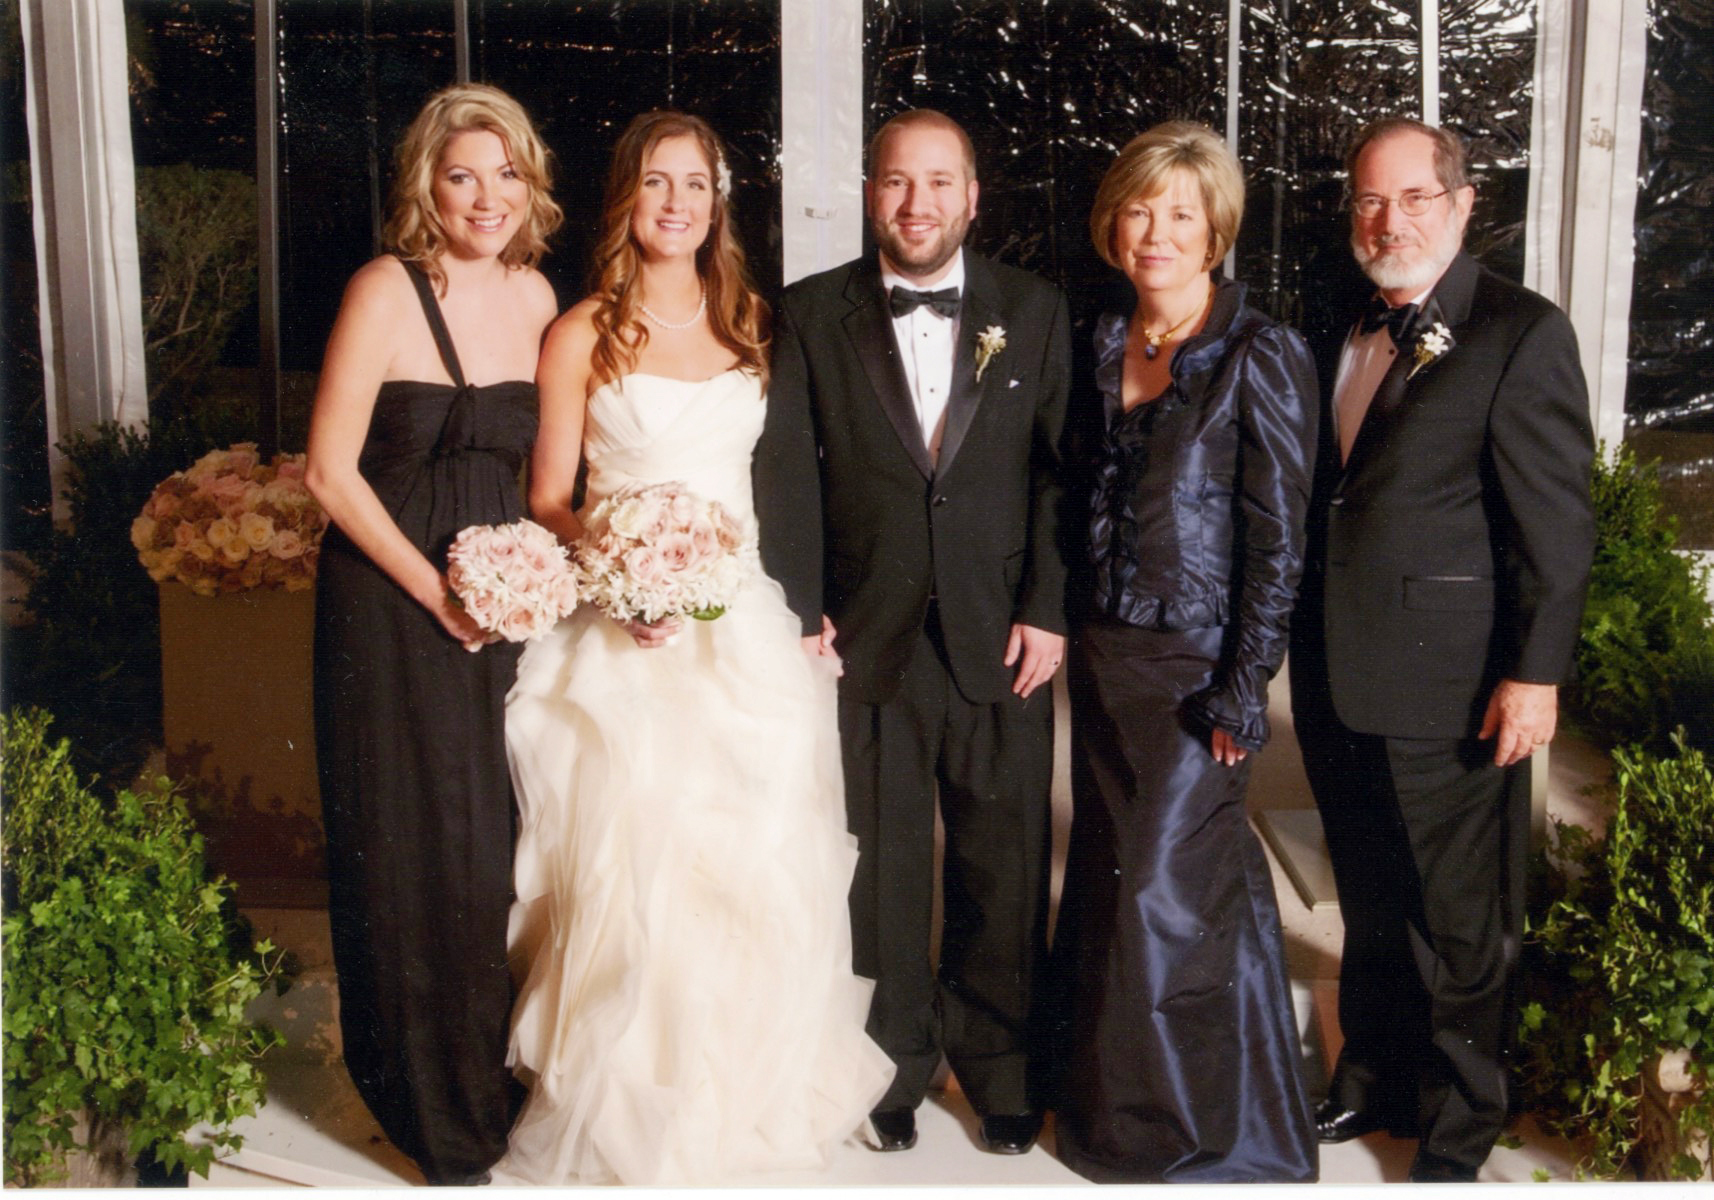 Kate, Jessica, Will, Emily, and Tom during Will and Jessica's wedding in Austin, Texas, on December 29, 2012.